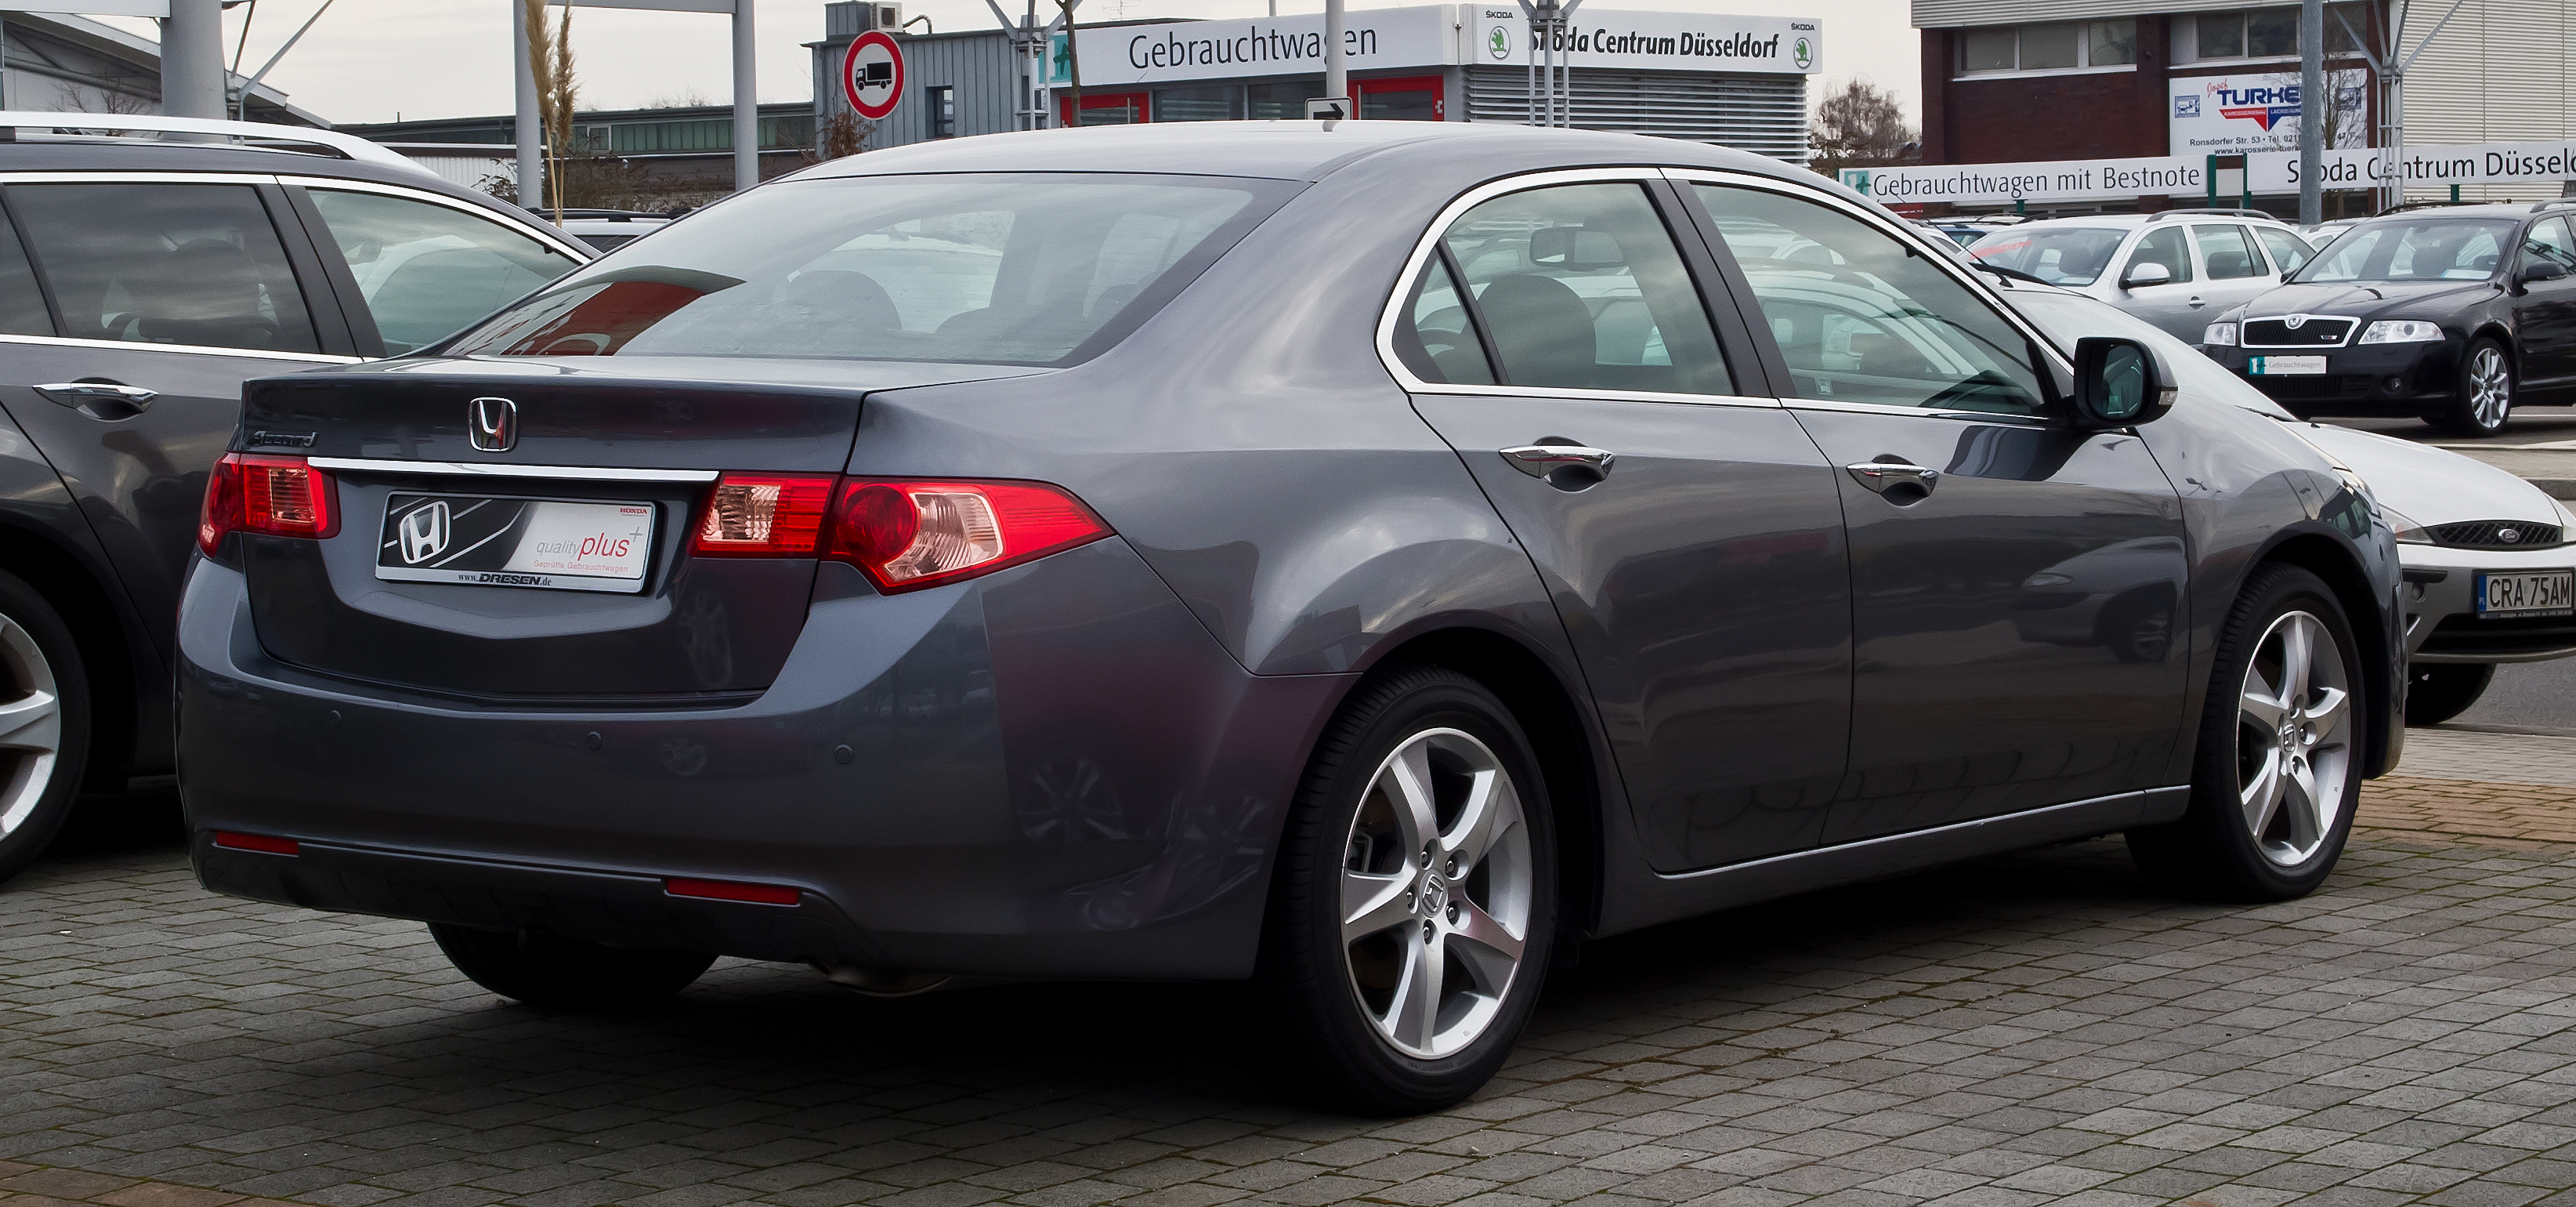 Honda Accord Viii 2 2 I Dtec 150hp